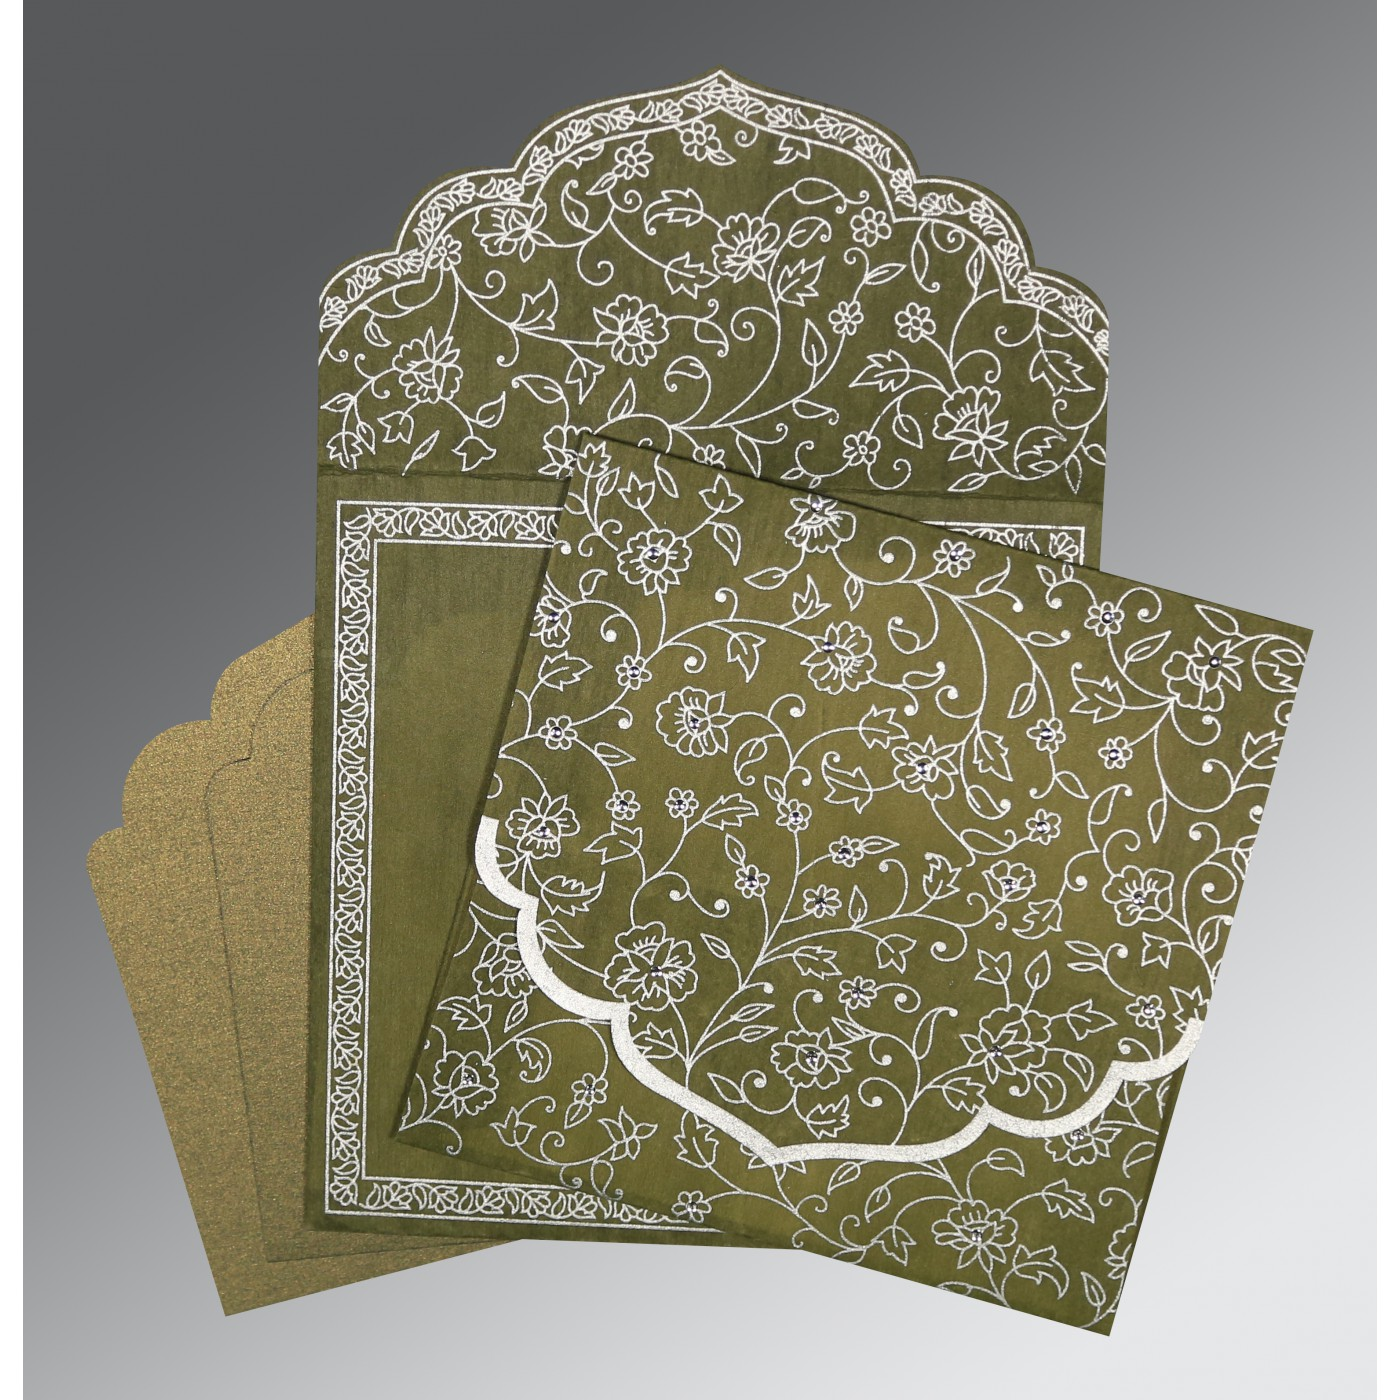 OLIVE GREEN WOOLY FLORAL THEMED - SCREEN PRINTED WEDDING INVITATION : AI-8211M - A2zWeddingCards